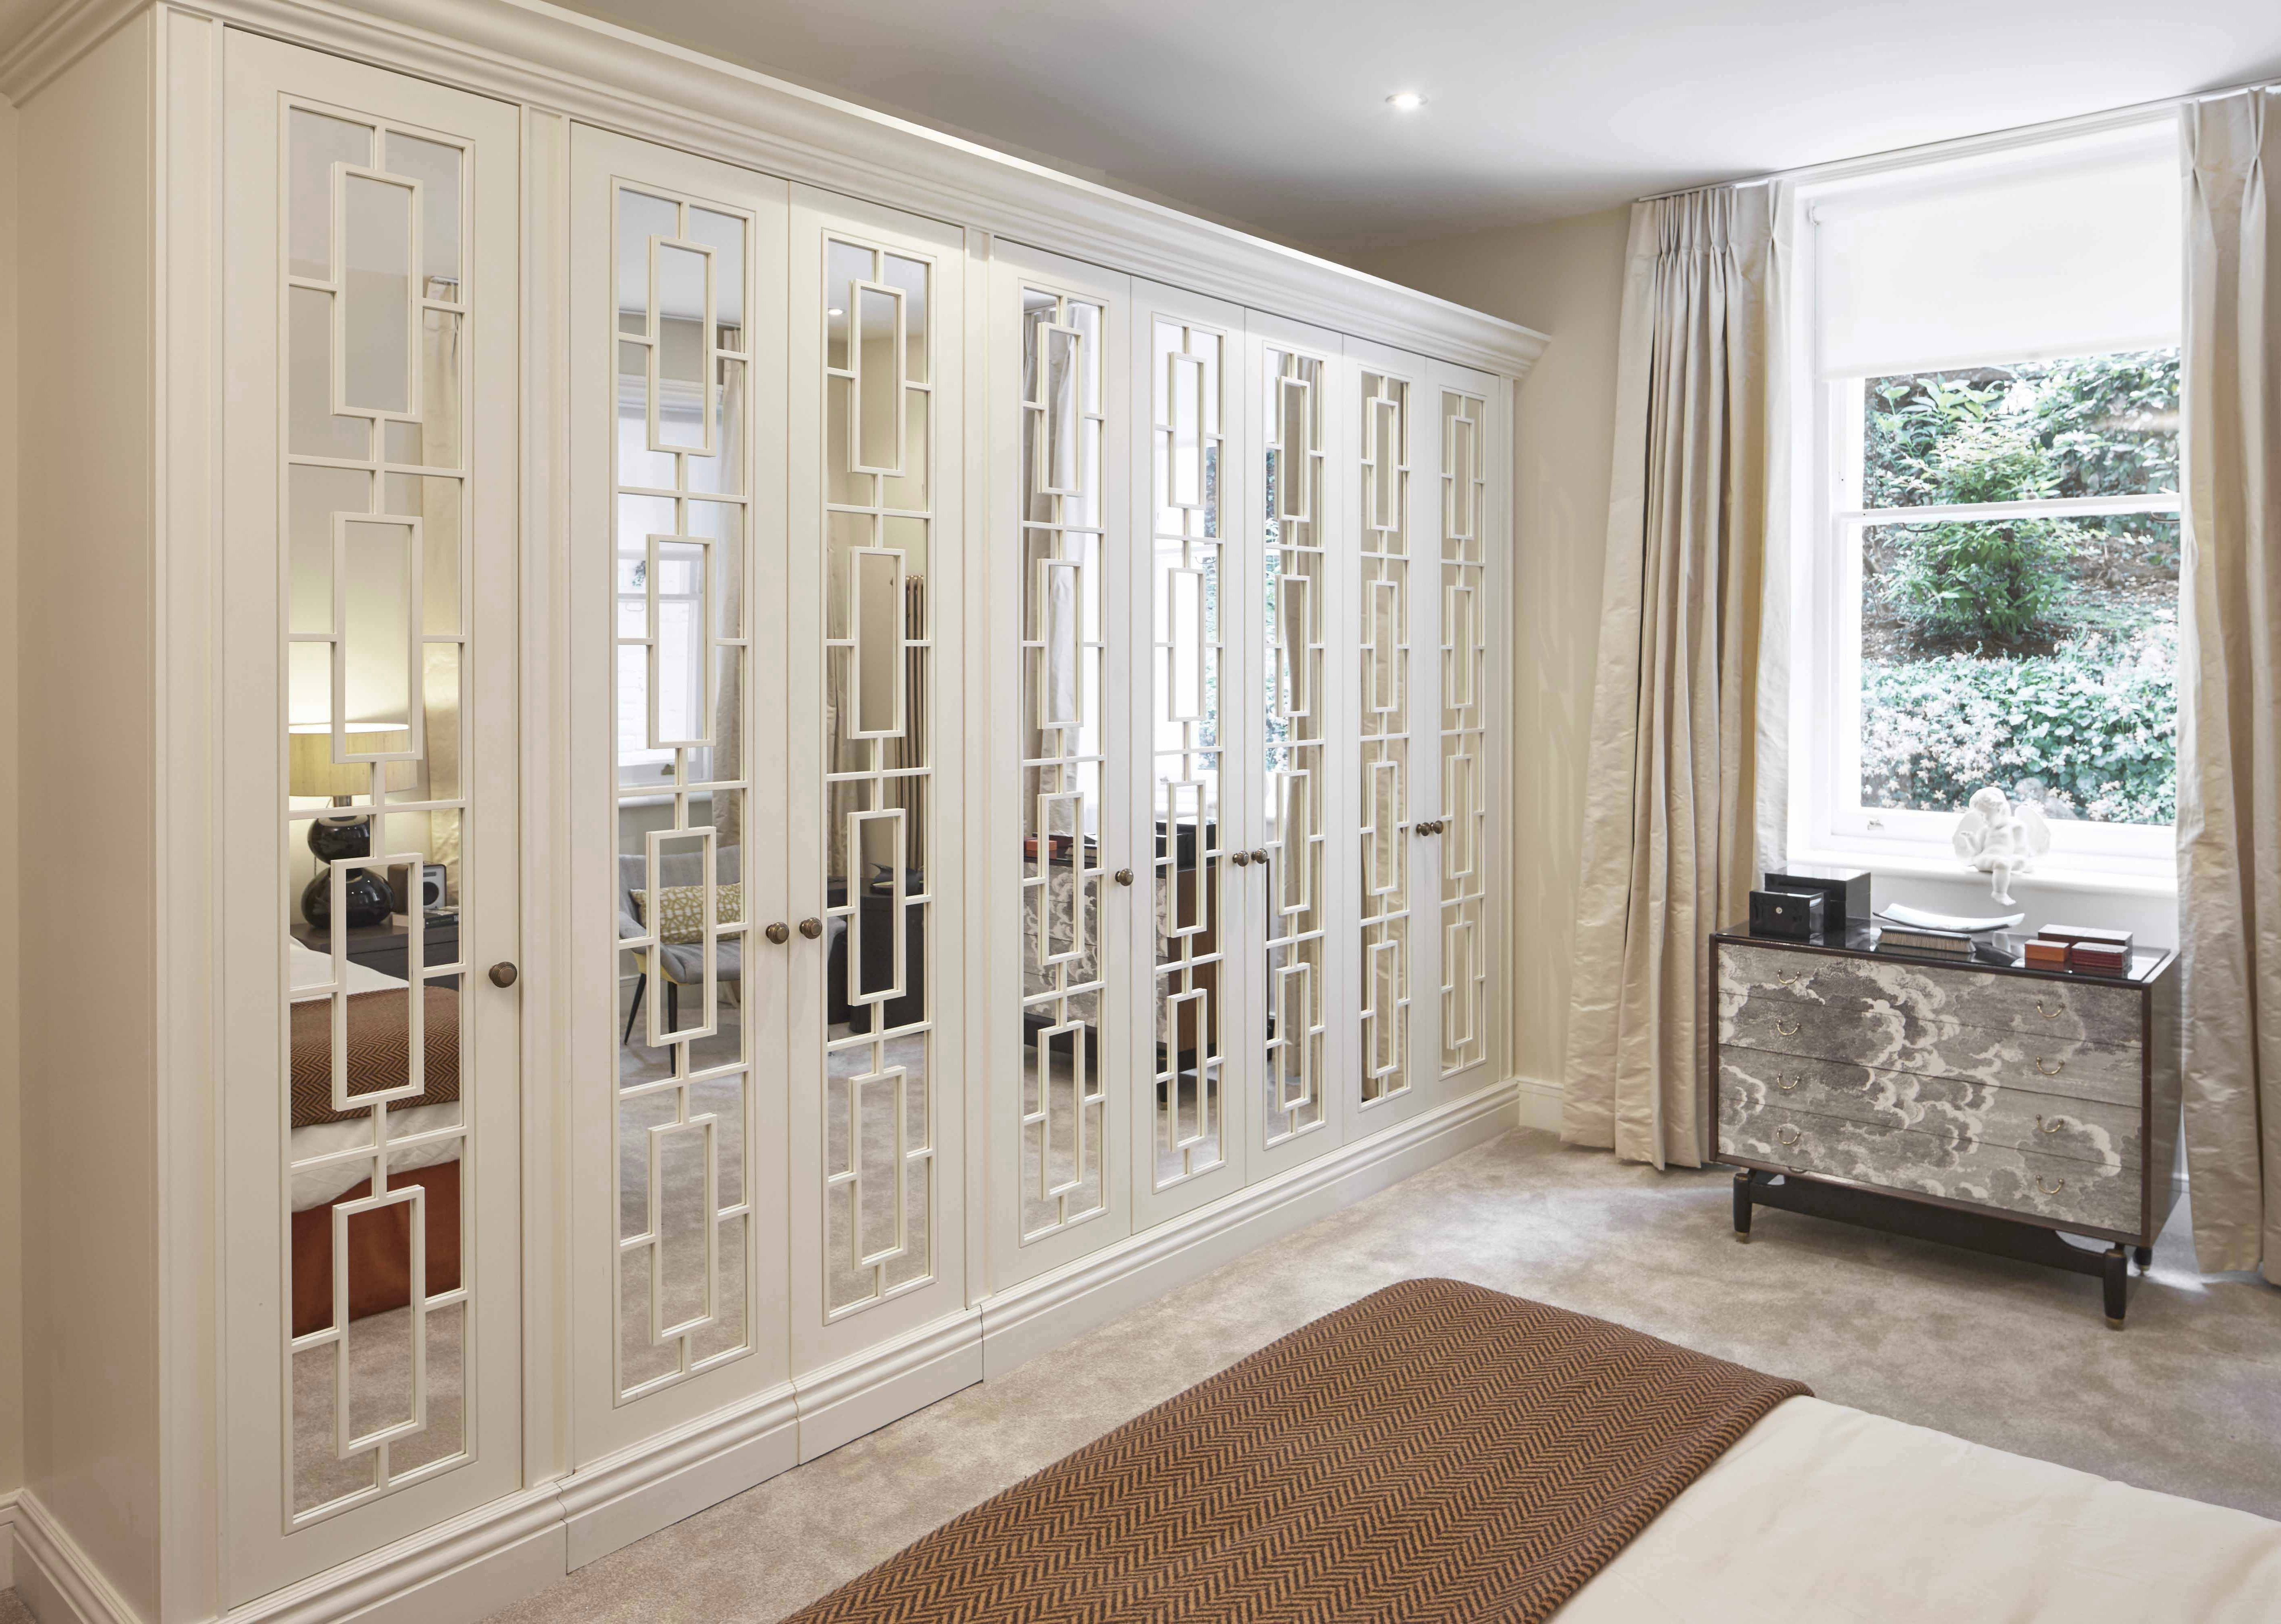 Imperial Wardrobes For 2017 Bespoke Wardrobe London – Imperial – The Heritage Wardrobe Company (View 14 of 15)